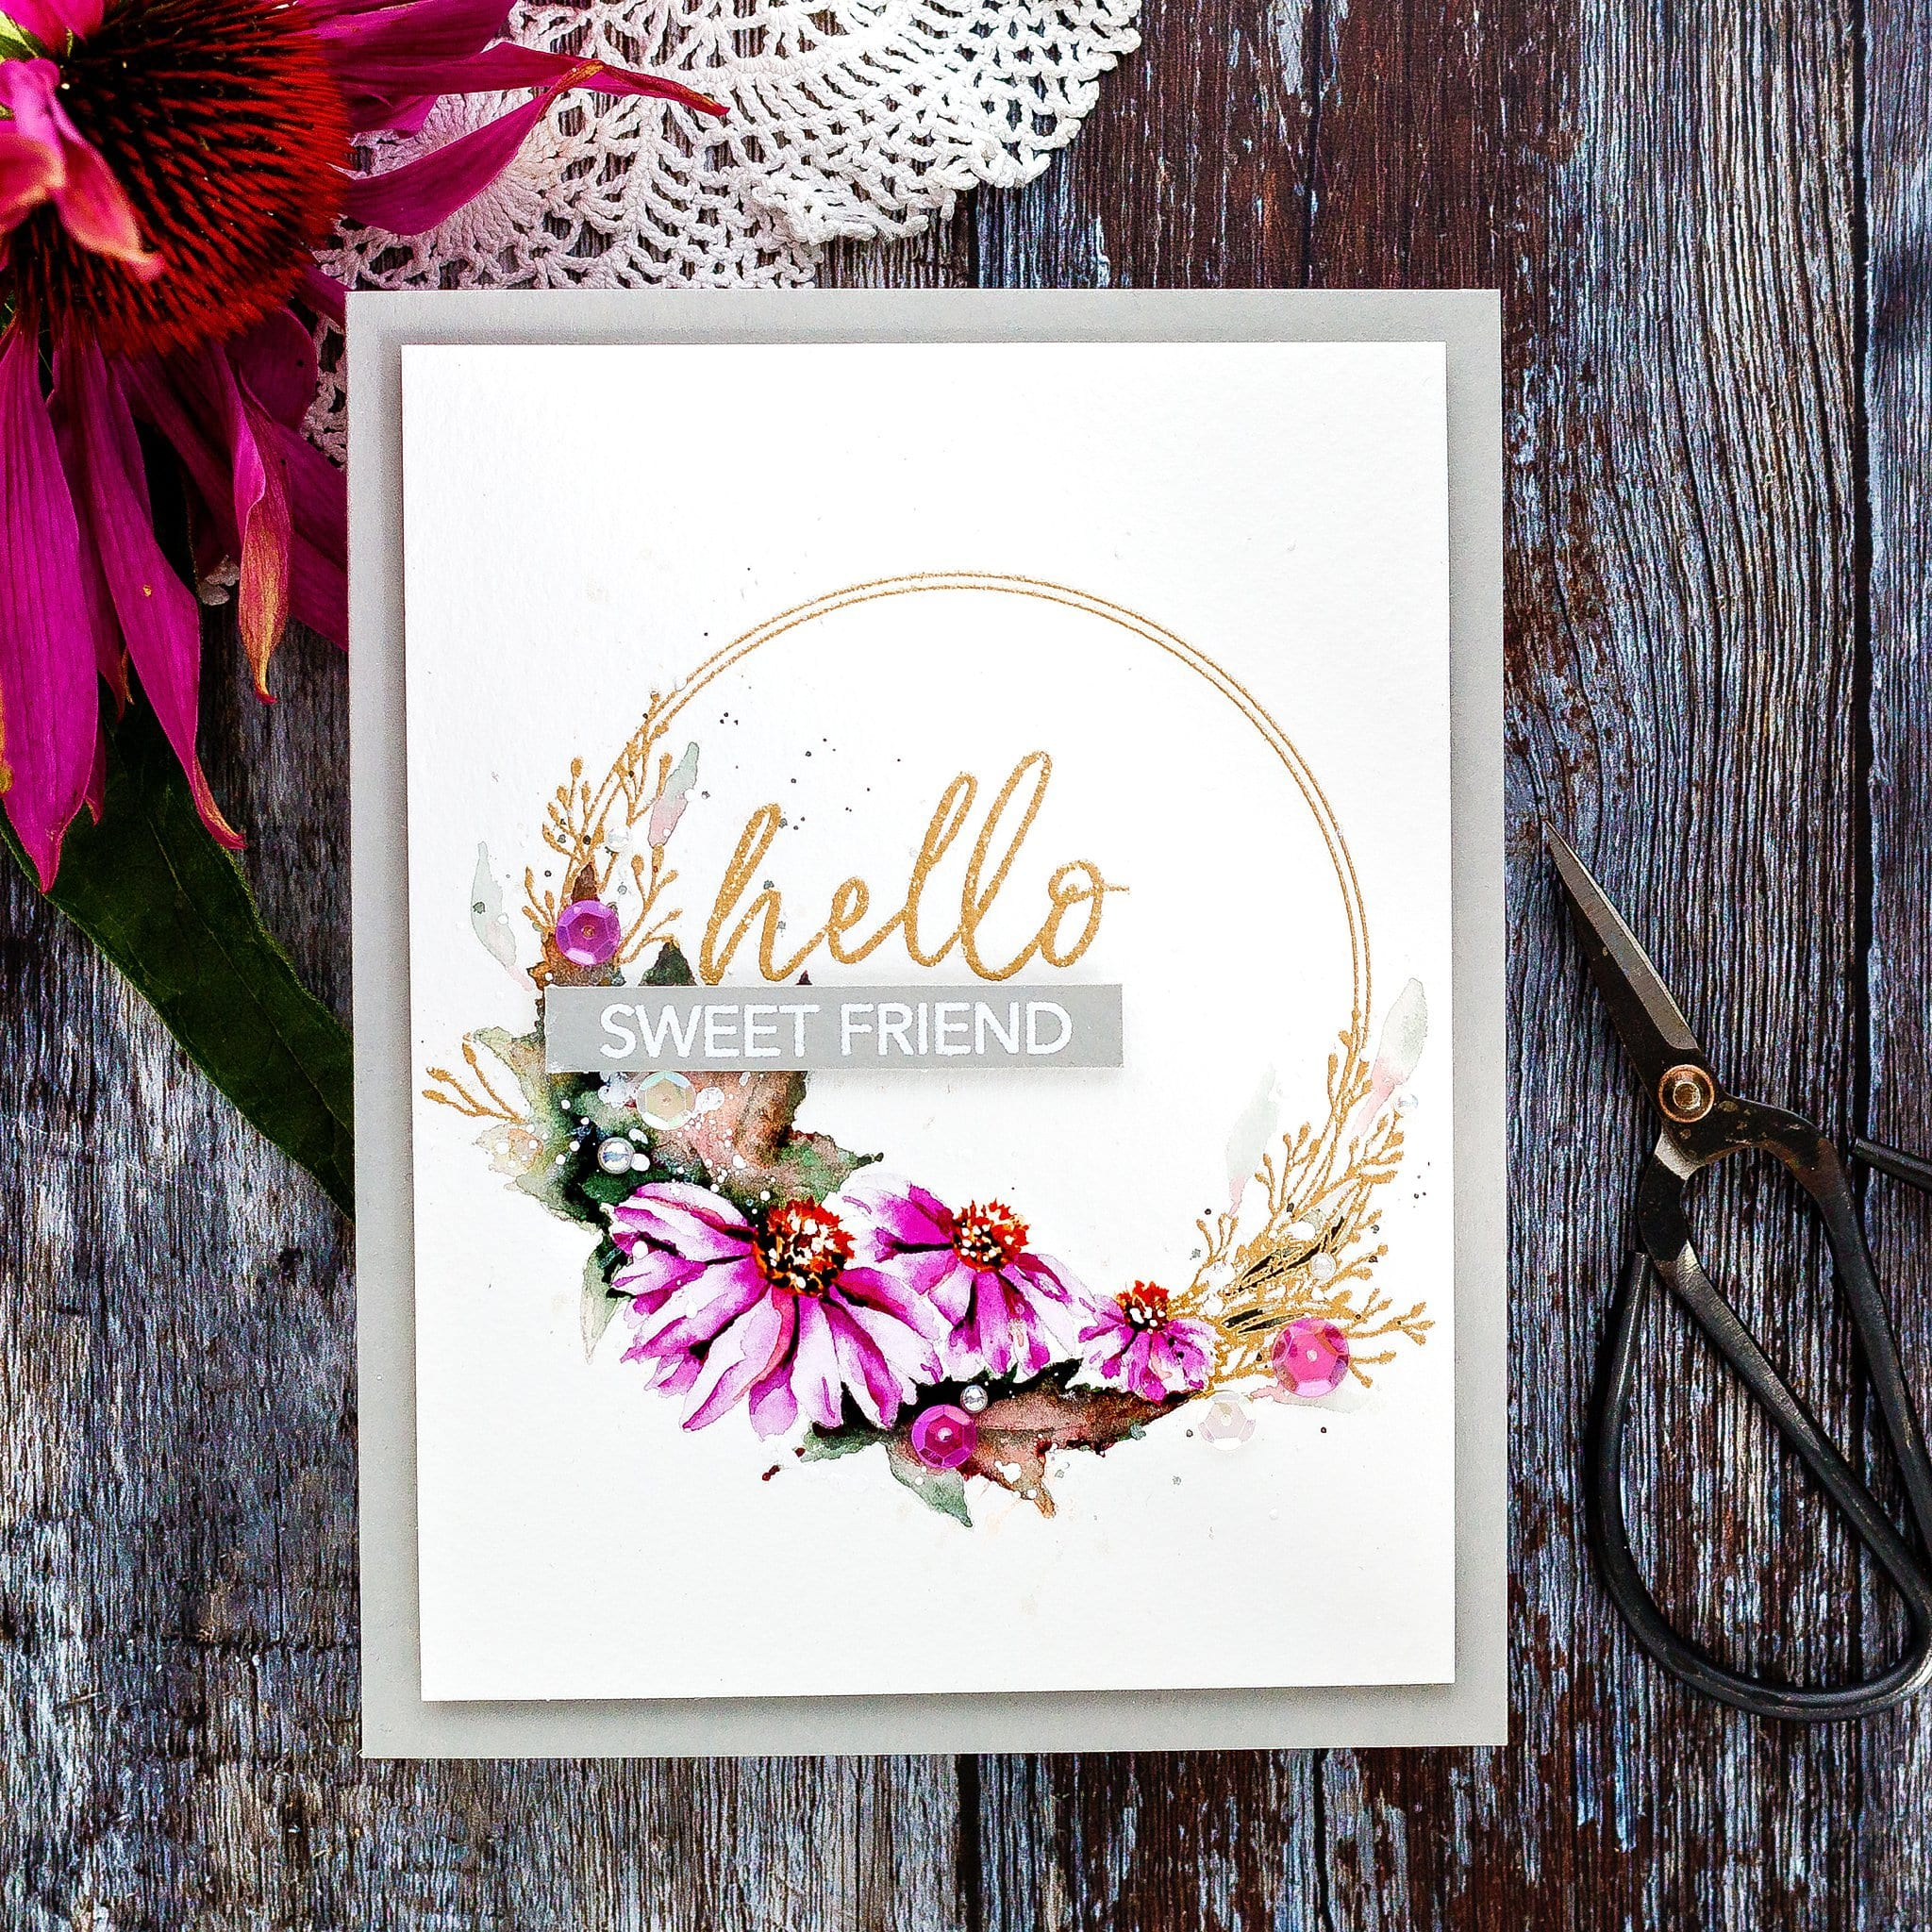 Watercoloured floral wreath handmade card tutorial by Debby Hughes using supplies from Honey Bee #watercolor #homemade